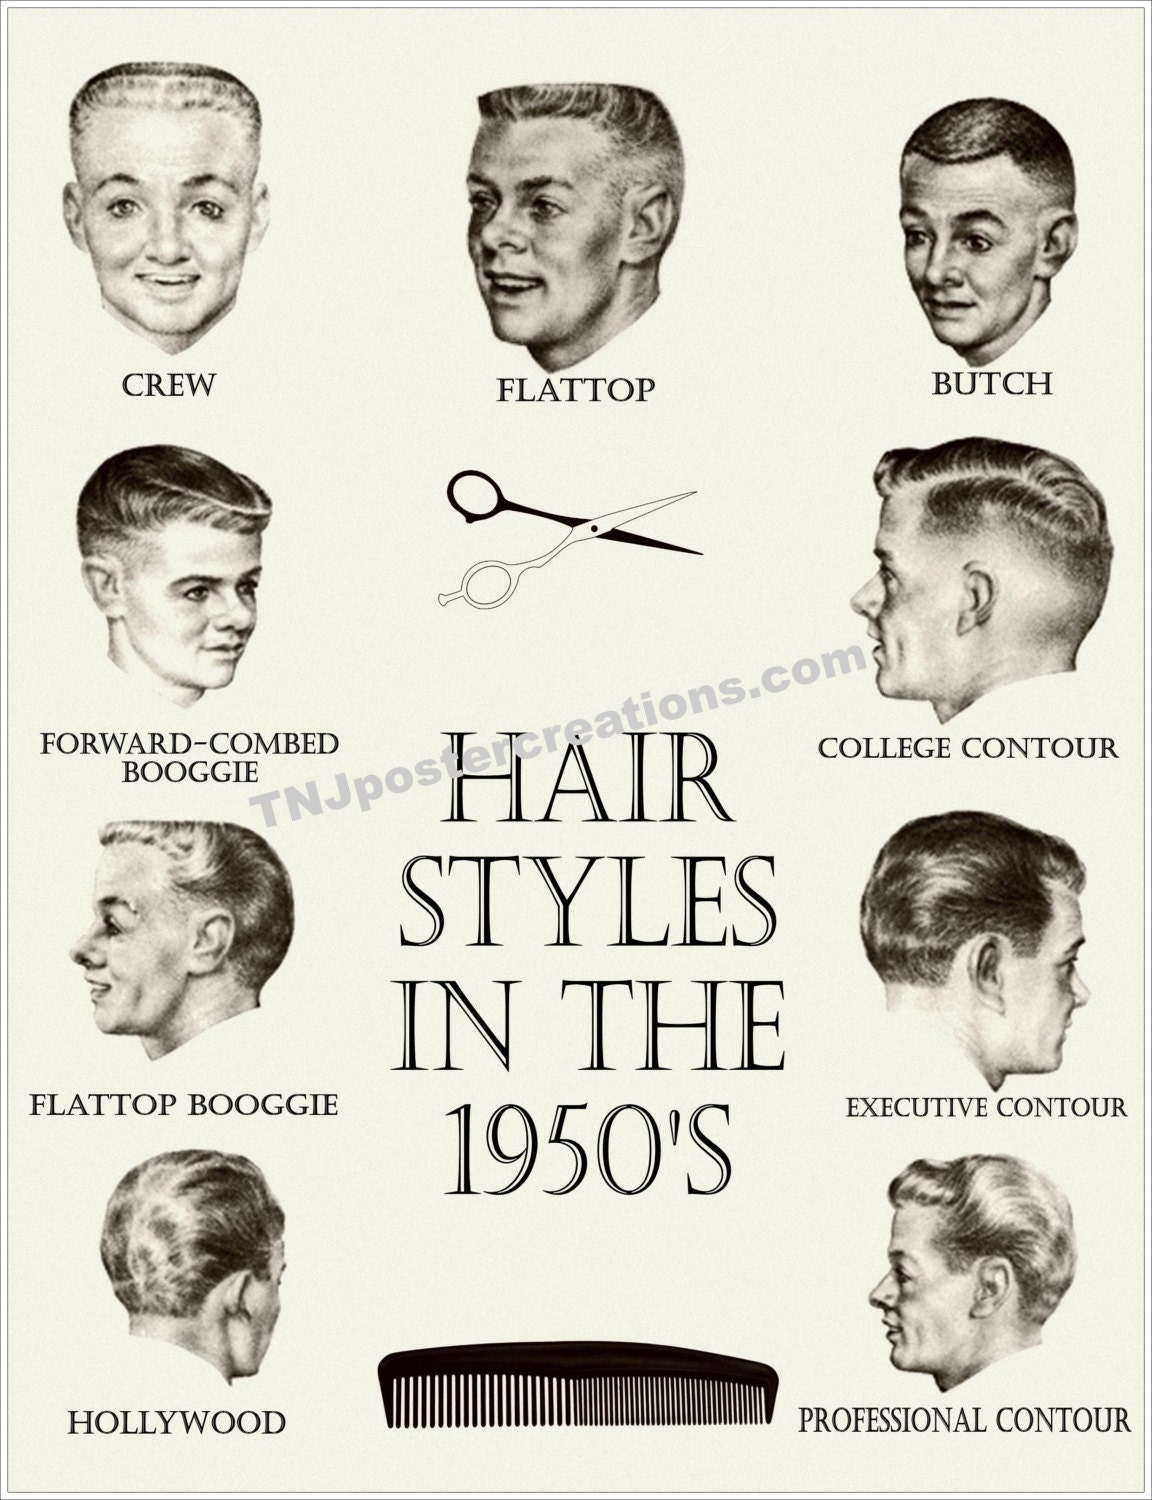 Hair Styles in the 1950s Poster Crew Cut Flattop Butch